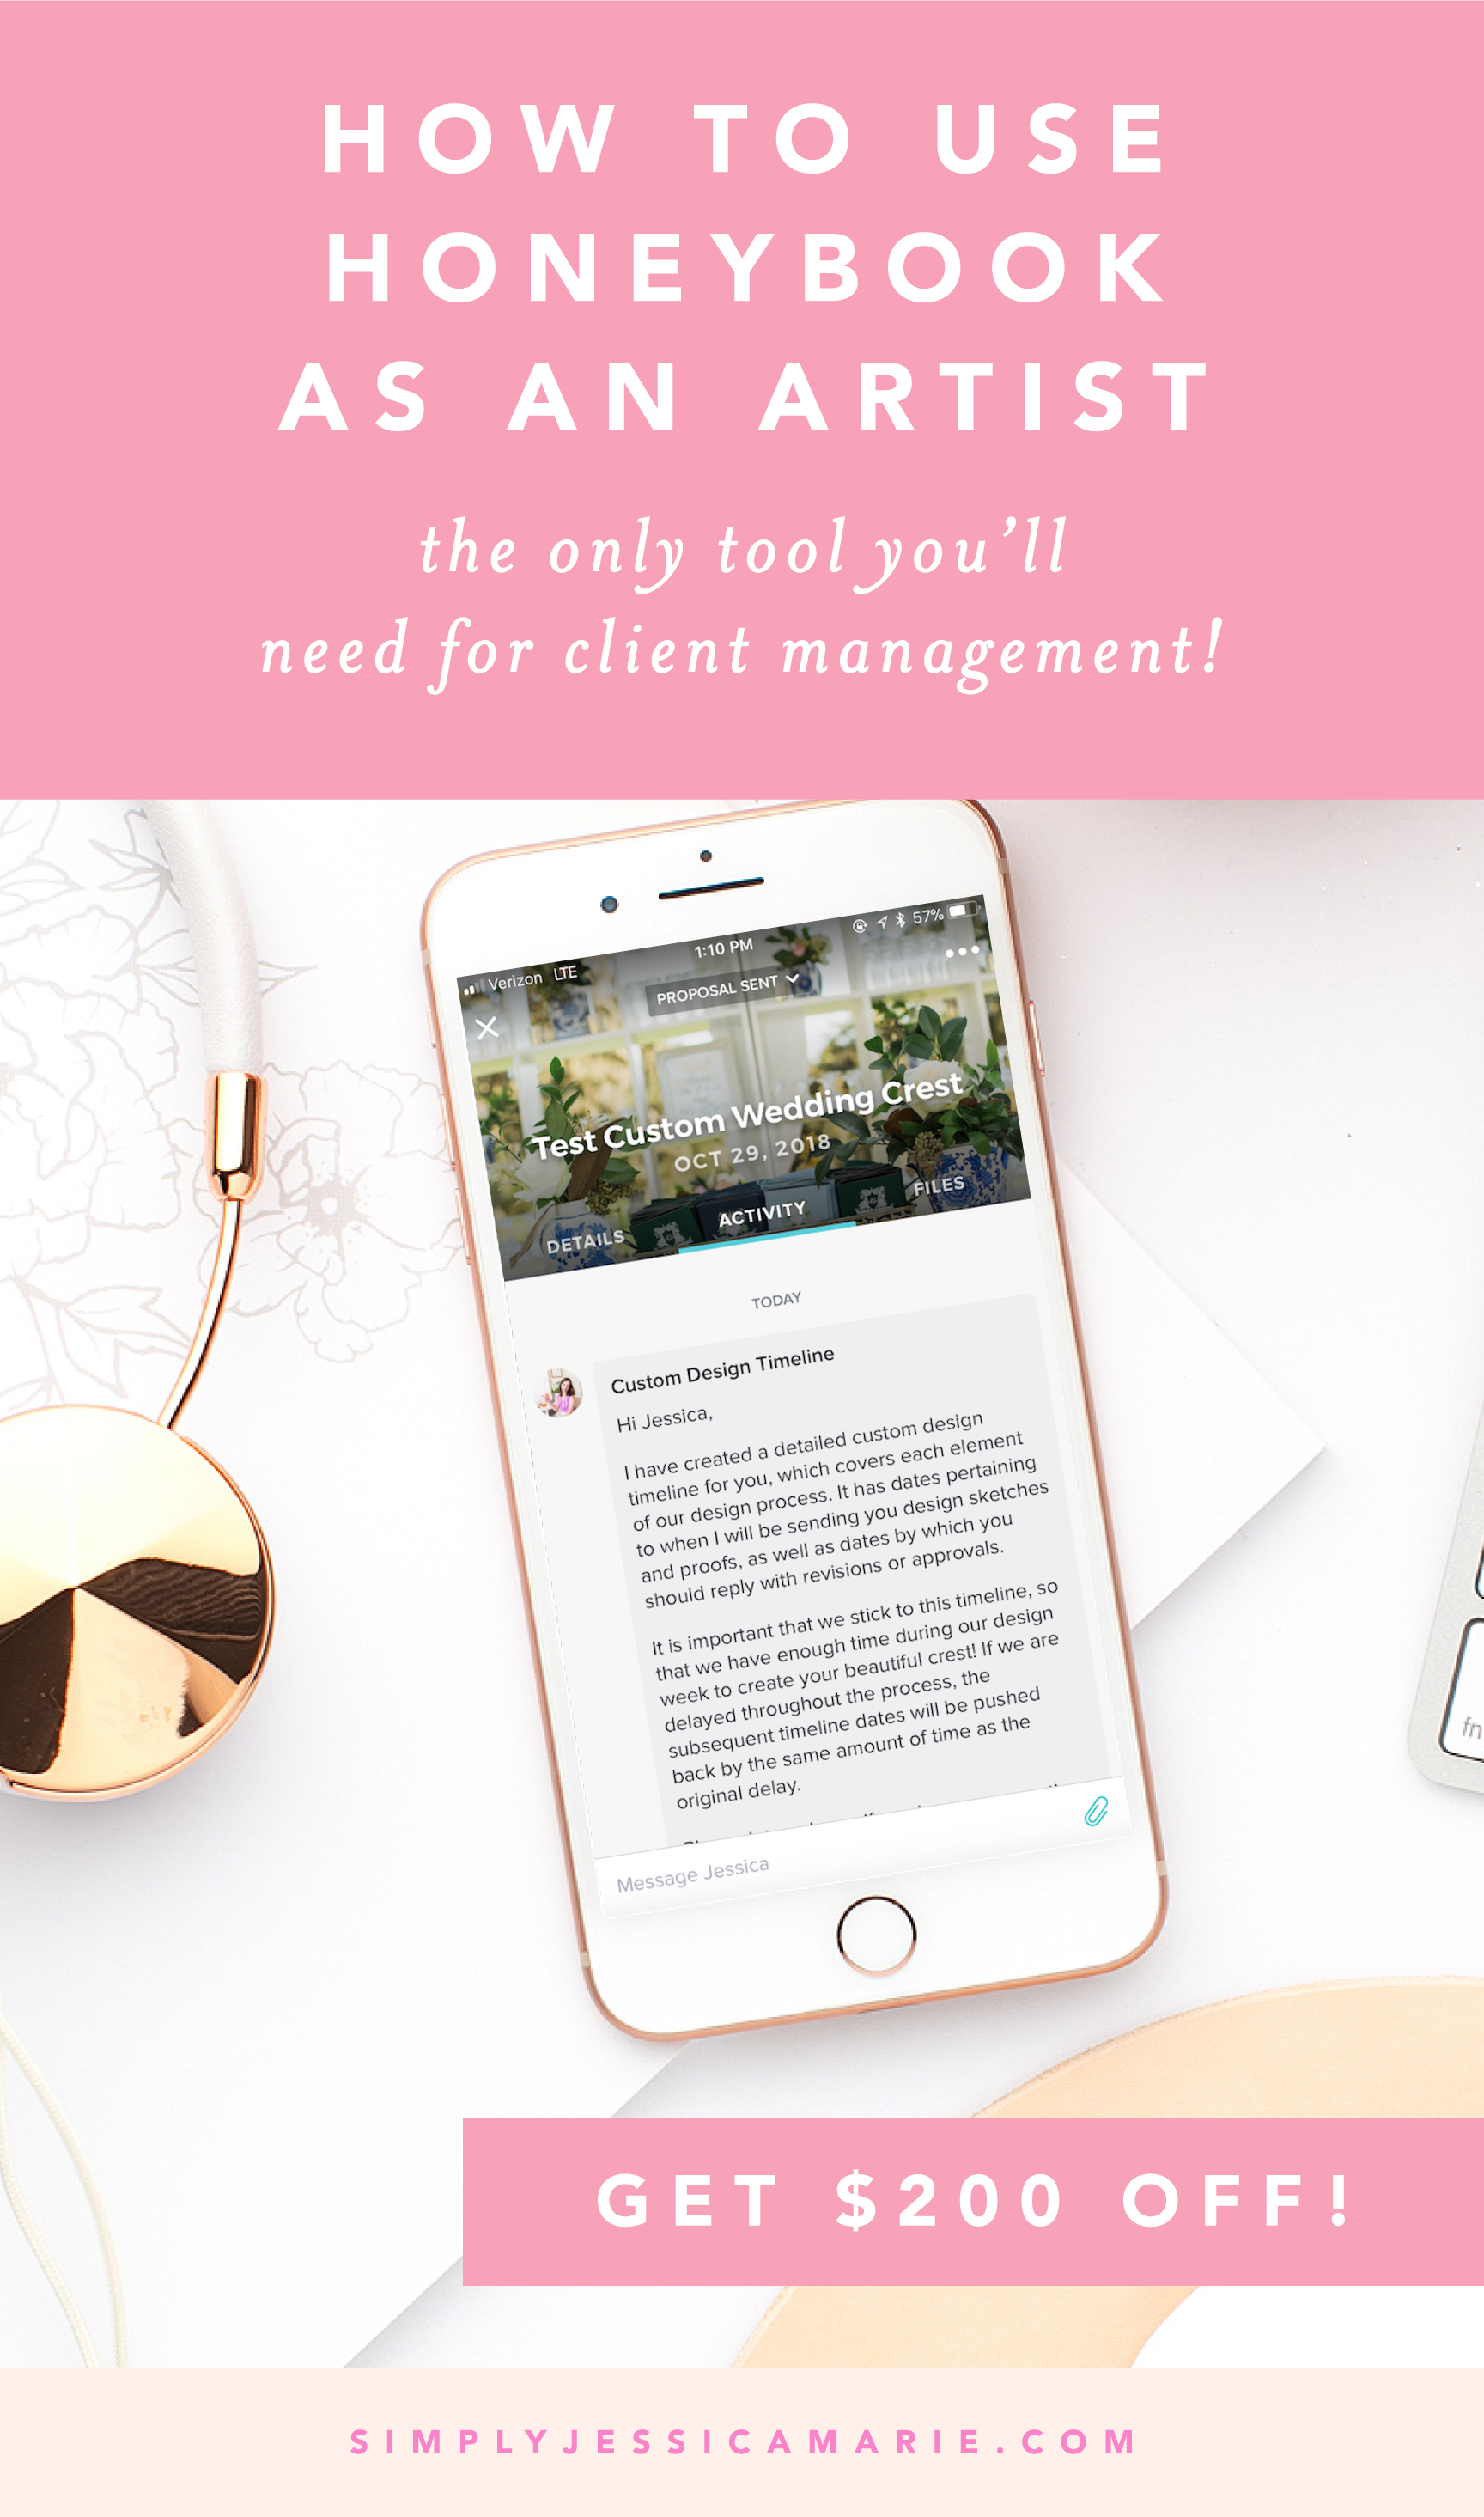 How to Use HoneyBook as an Artist by Simply Jessica Marie   Get $200 Off HoneyBook